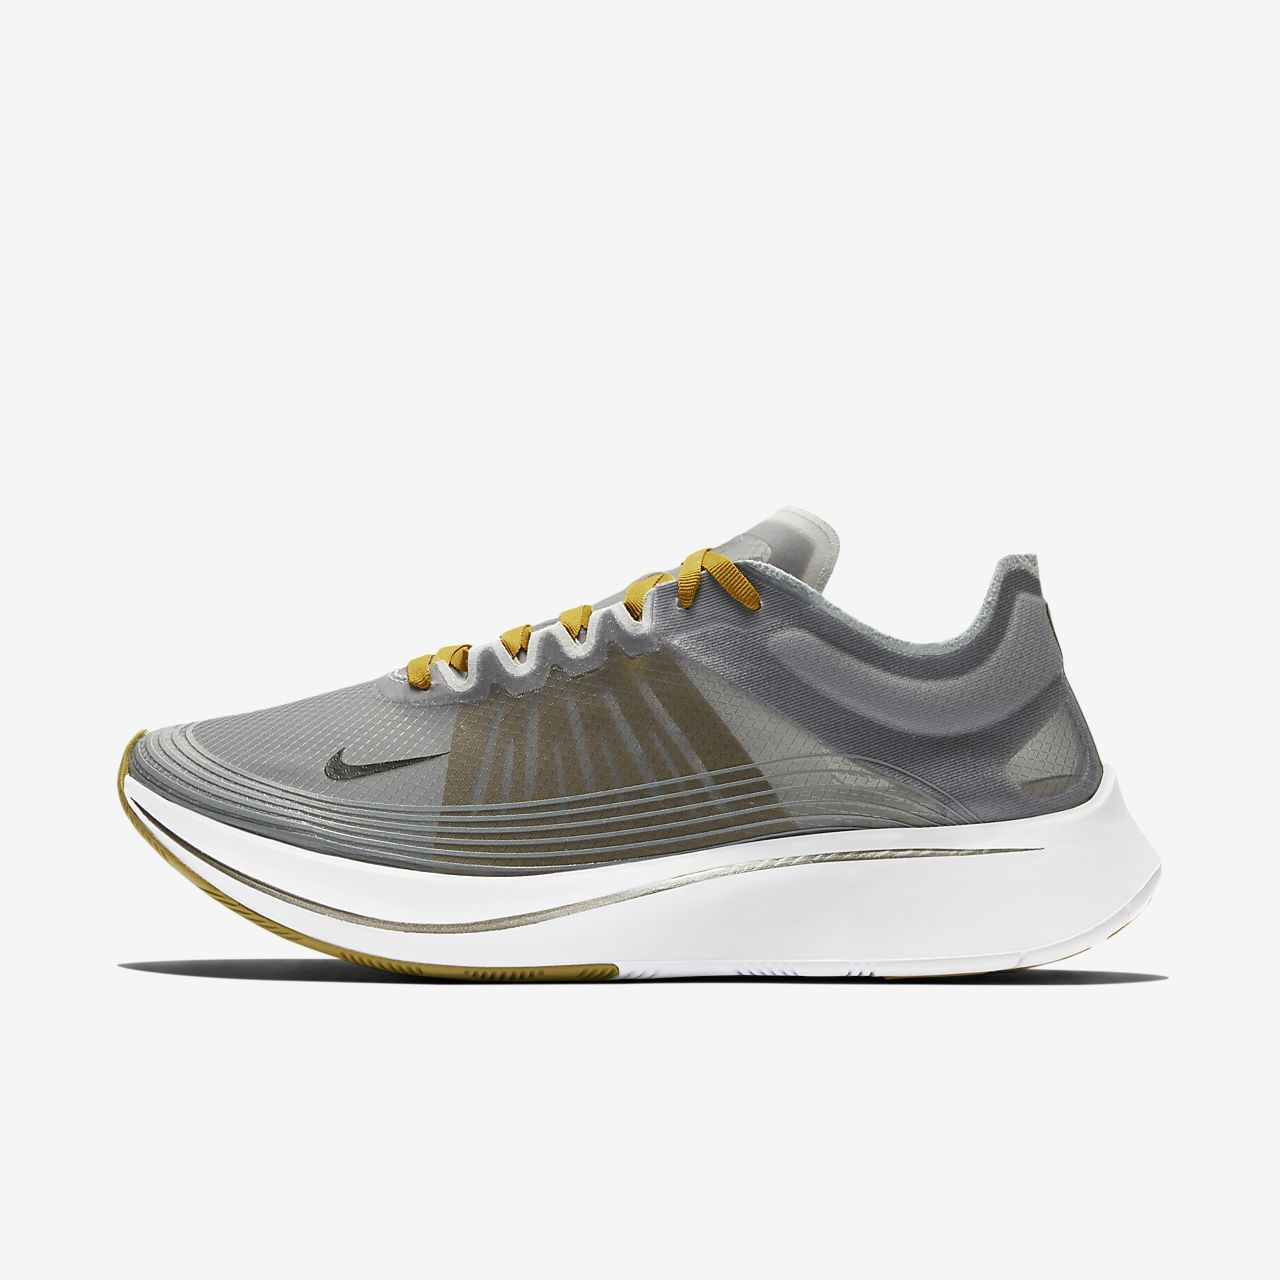 1e4a0128515a Nike Zoom Fly SP Running Shoe. Nike.com